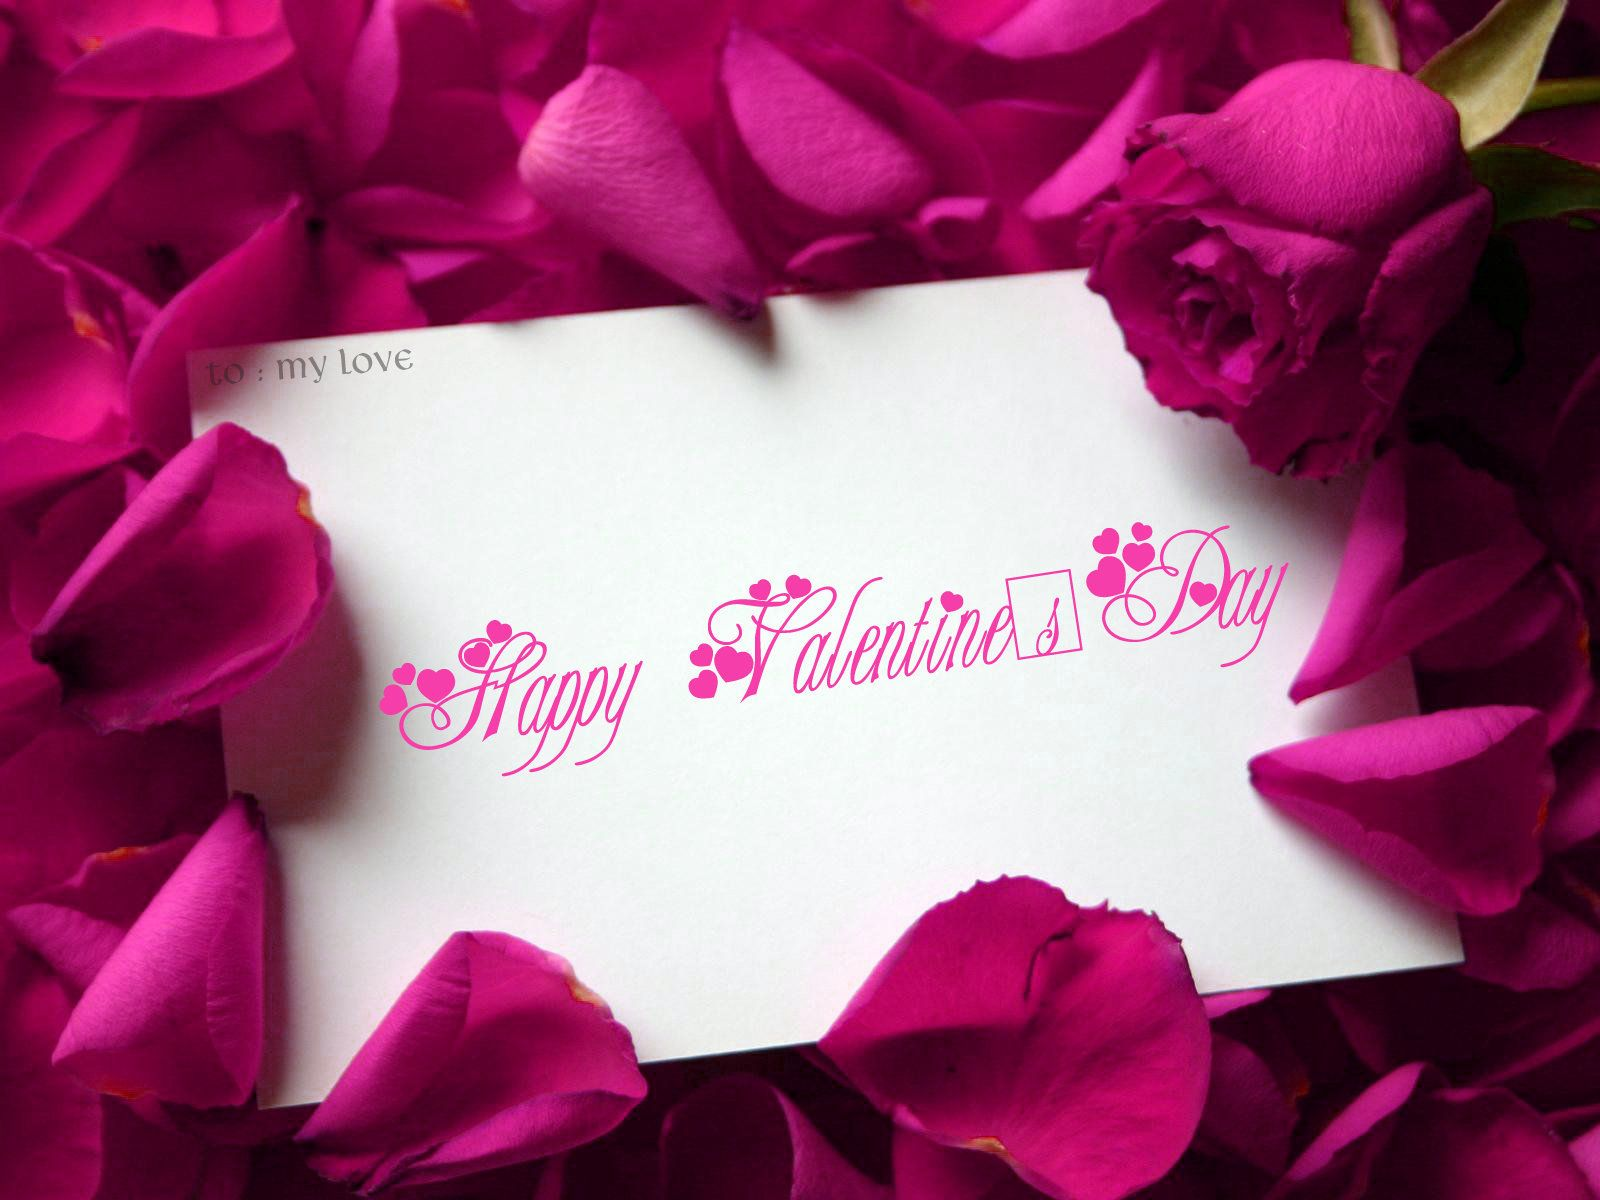 valentines day wallpapers free download for mobile | Valentines ...